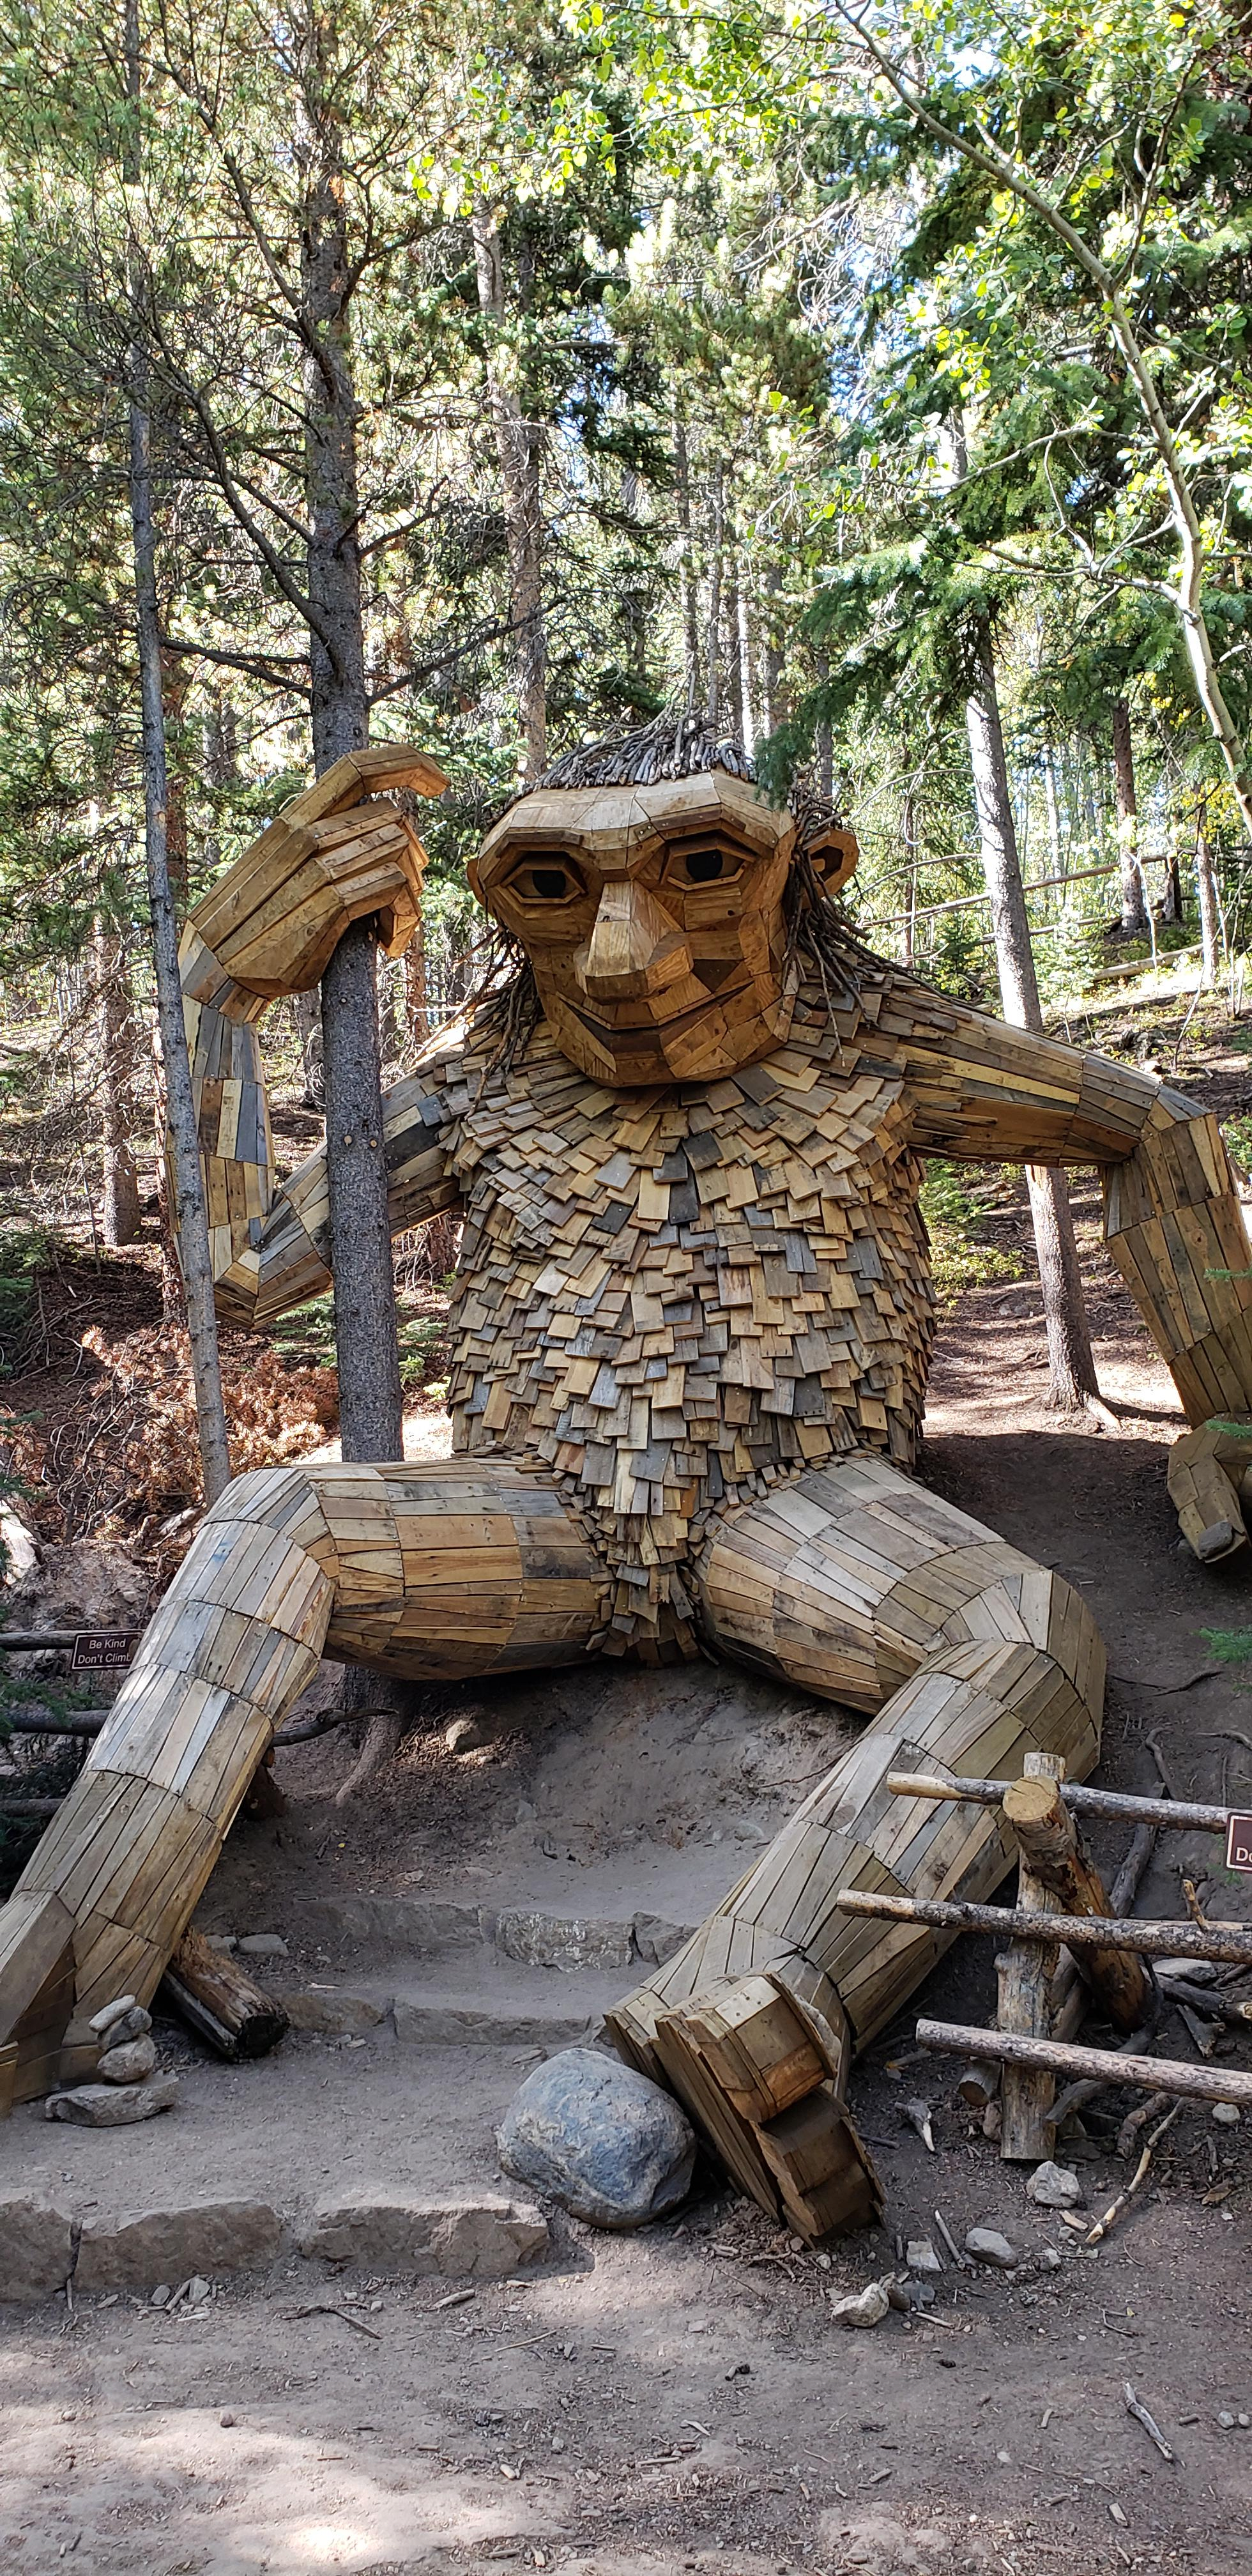 This troll I came across in the woods